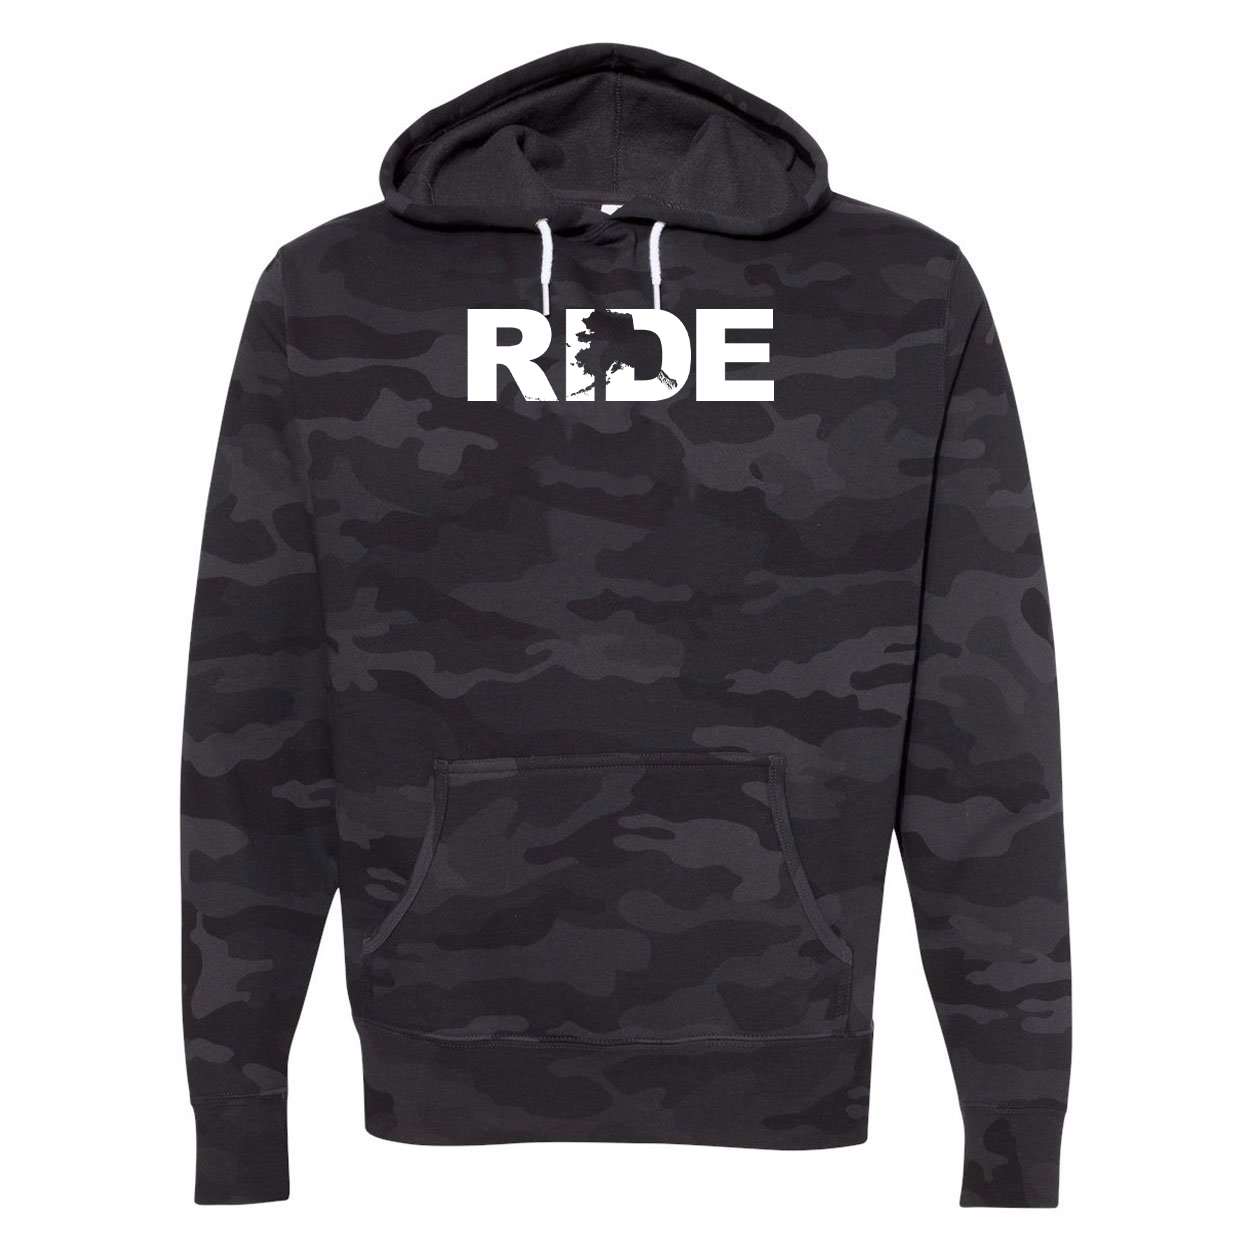 Ride Alaska Classic Unisex Hooded Sweatshirt Black Camo (White Logo)